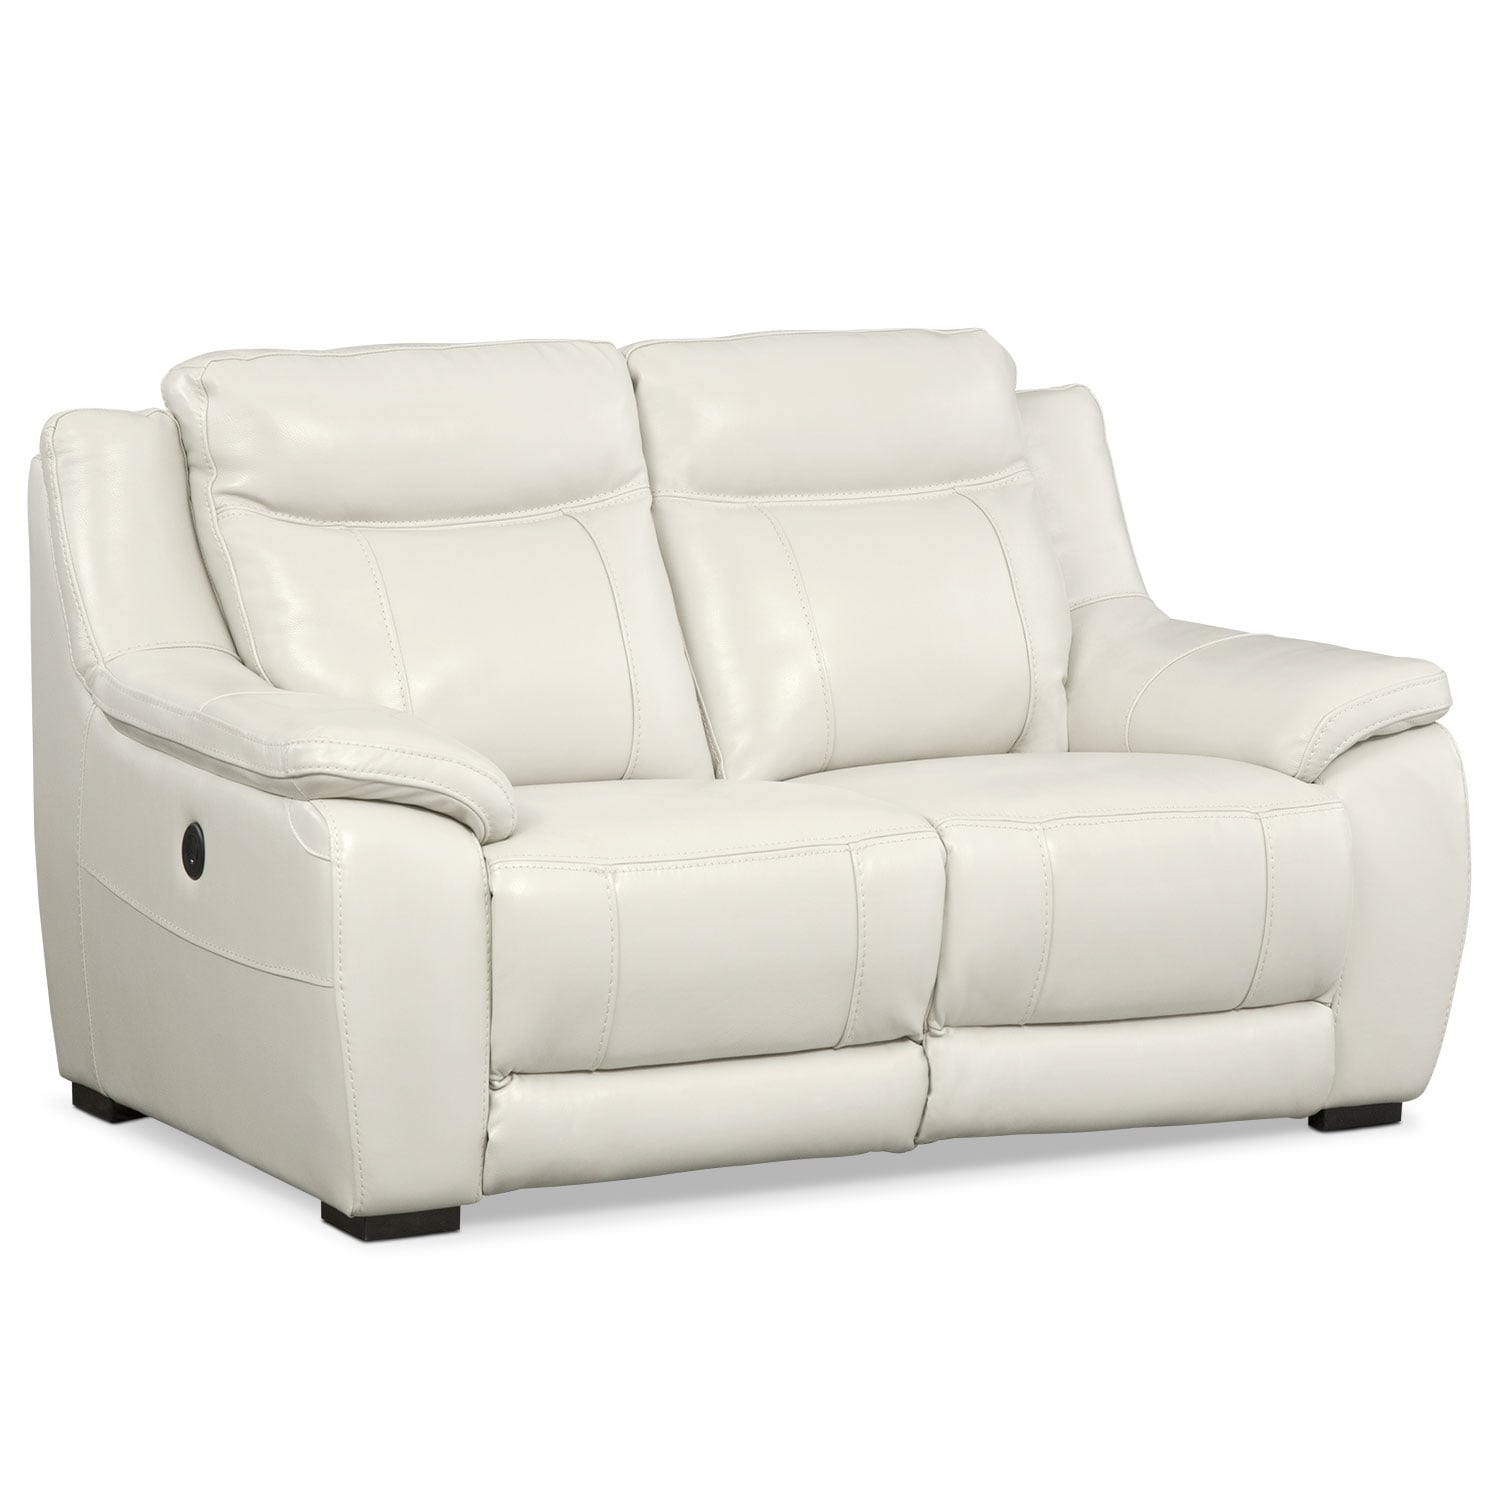 Lido Power Reclining Sofa Reclining Loveseat And Recliner Set Ivory Value City Furniture